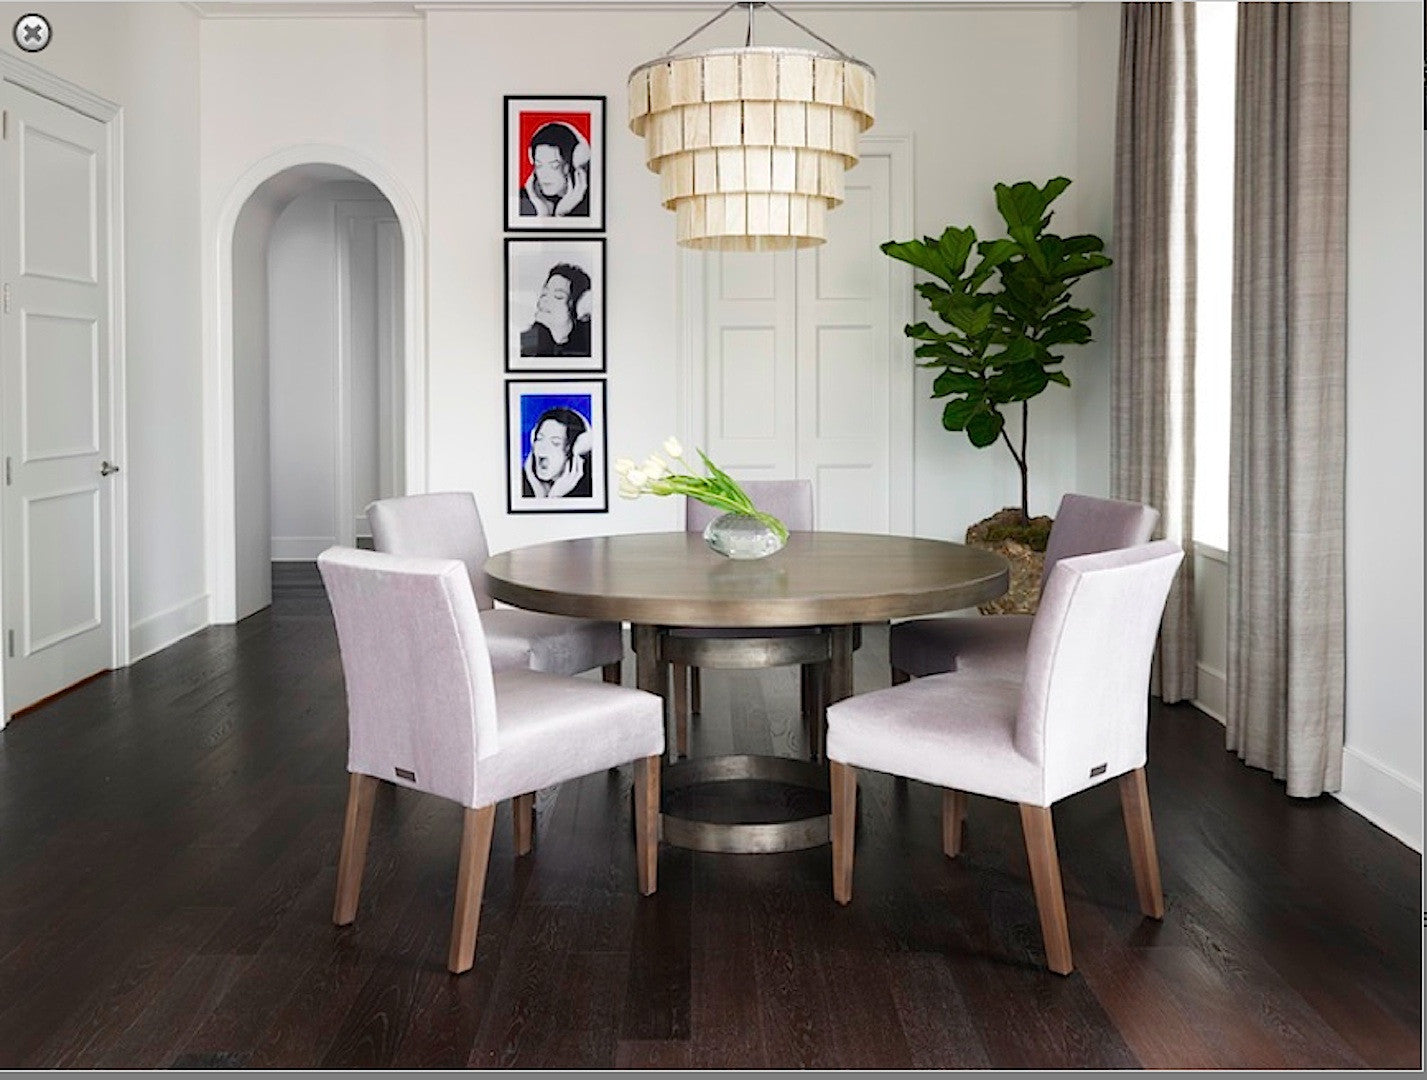 Industrial Modern Round Dining Table With Upholstered Chairs